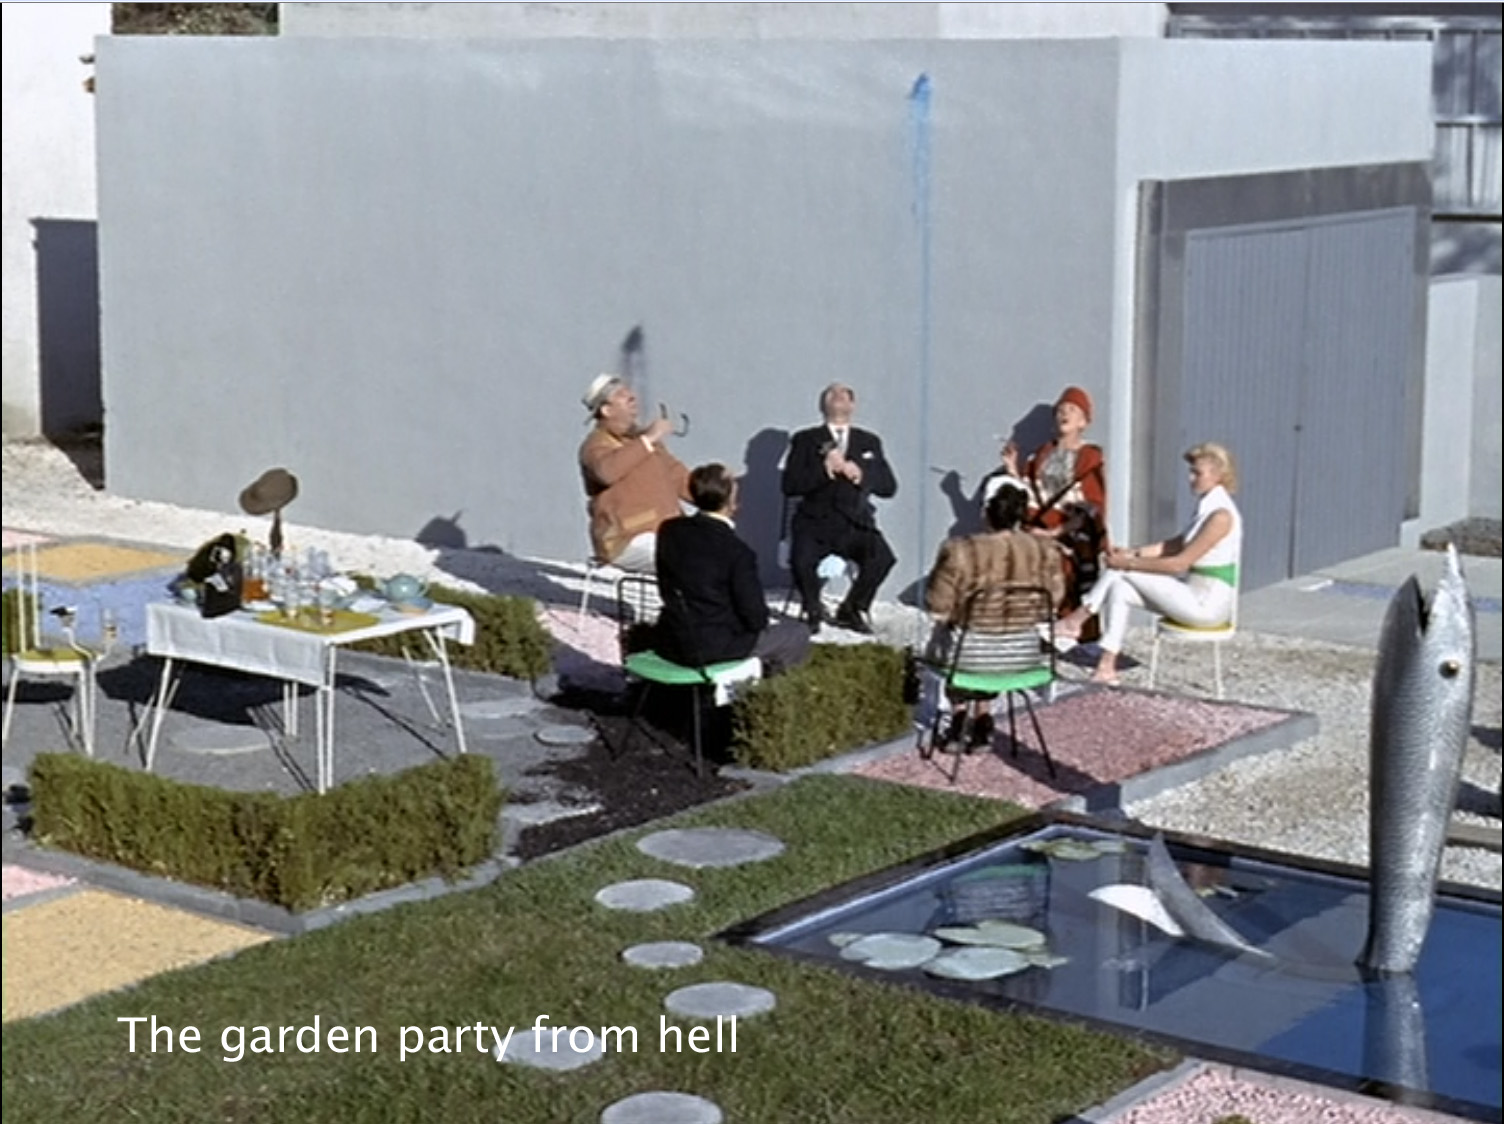 The garden party from hell